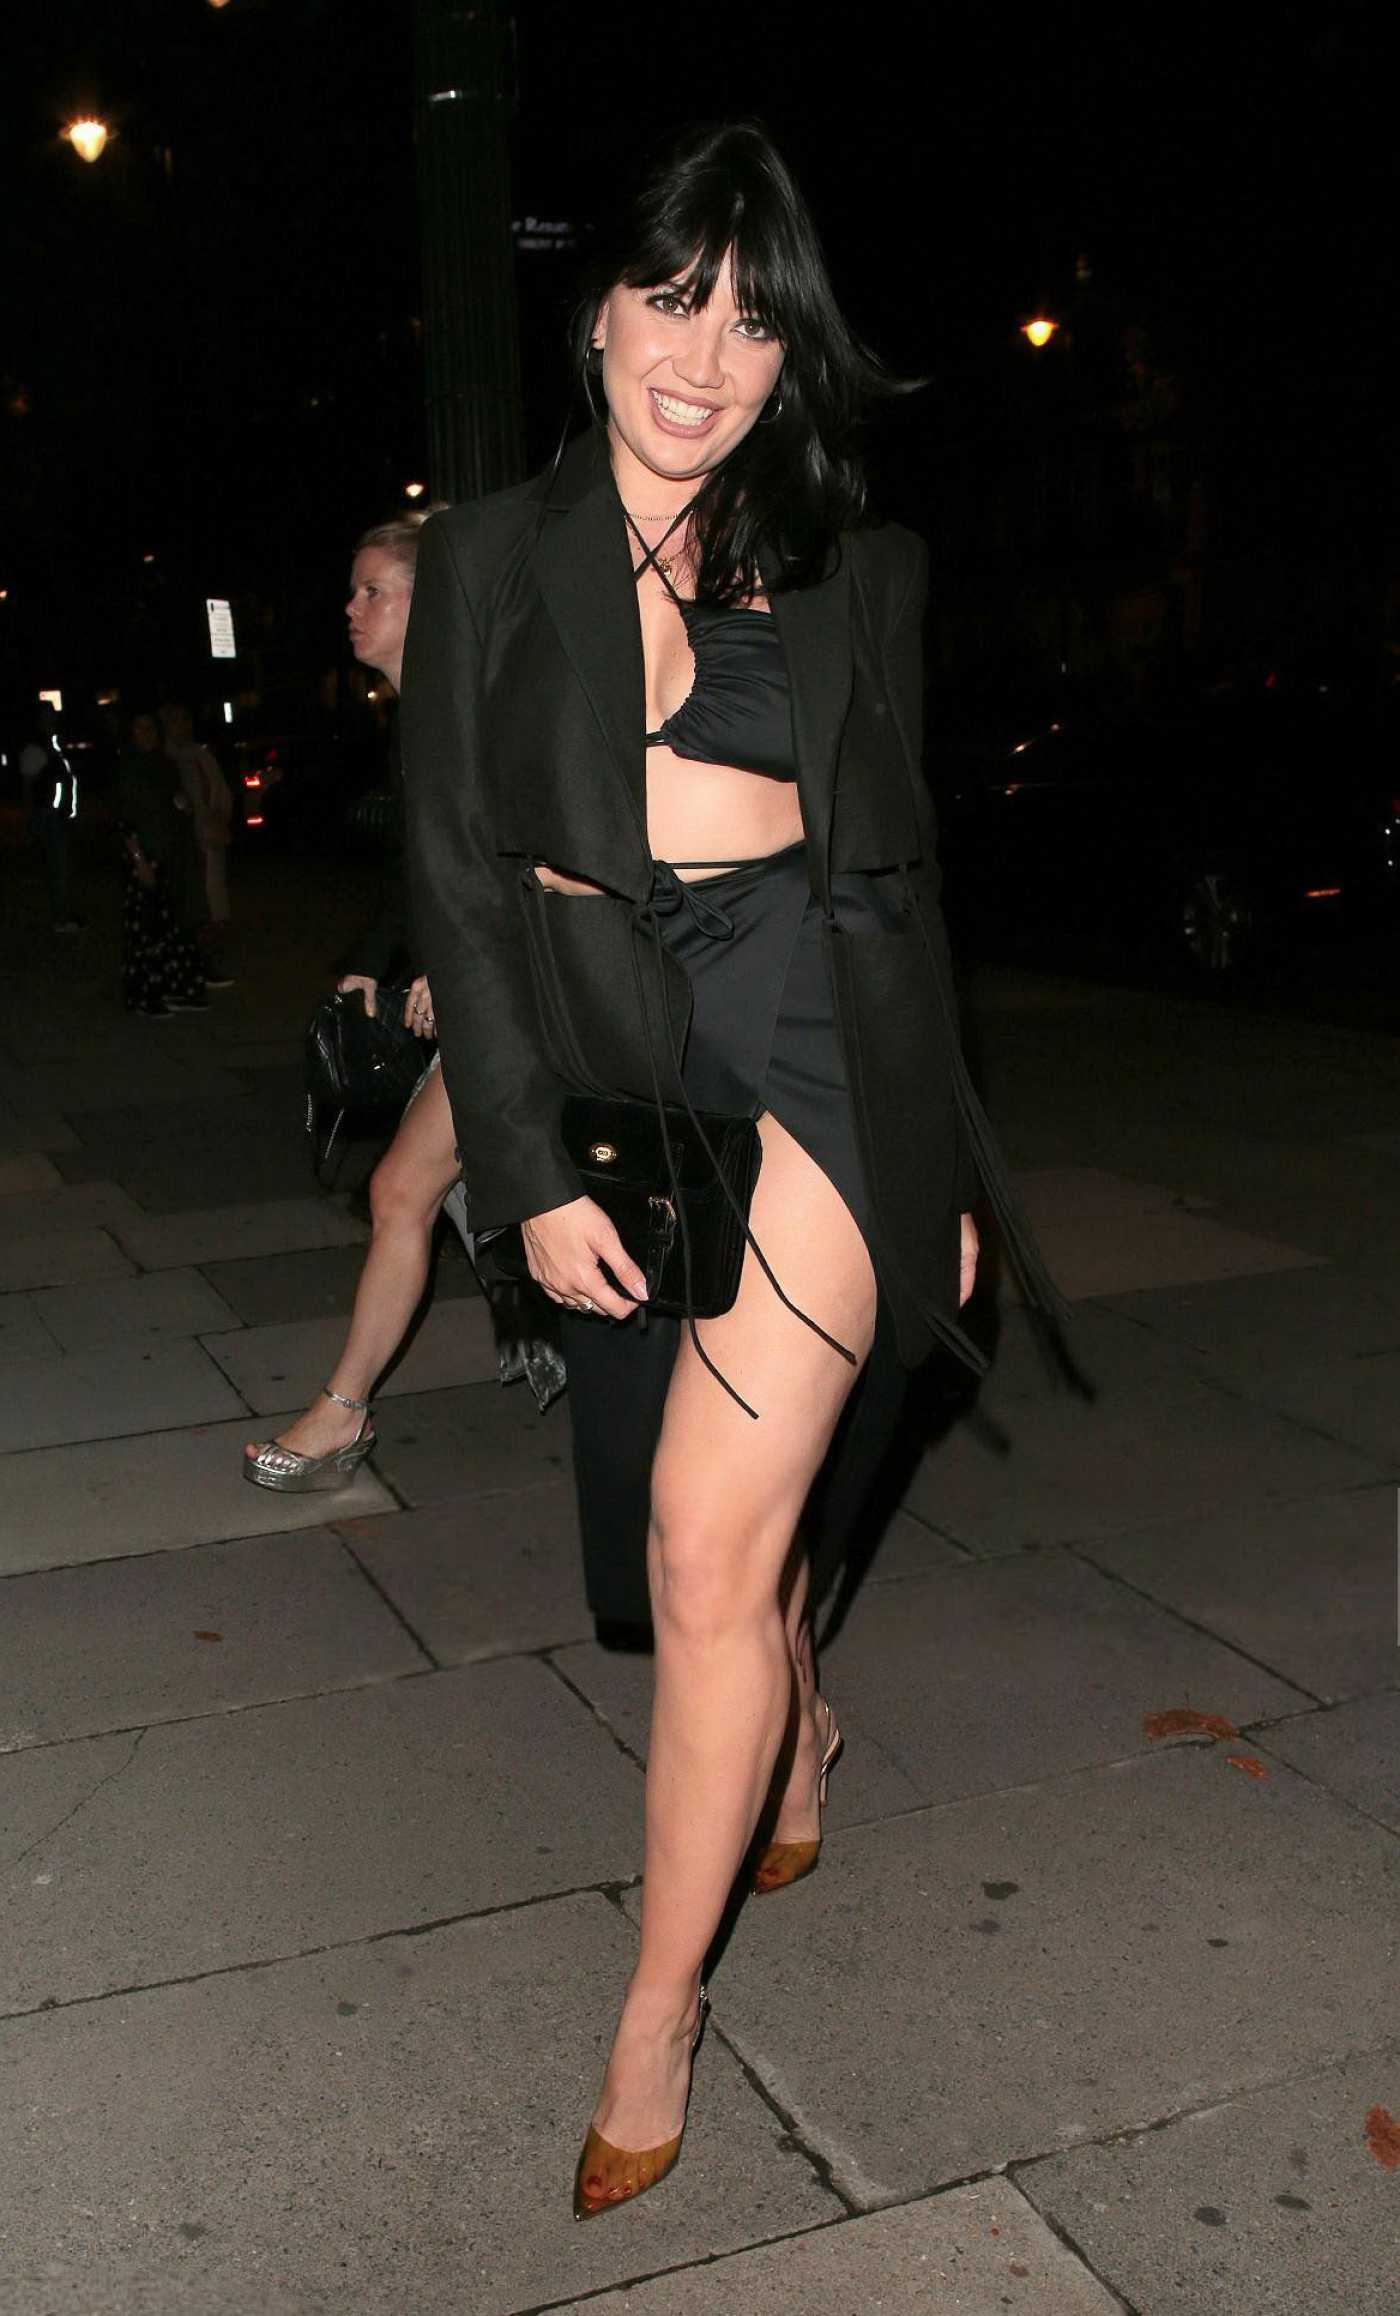 Daisy Lowe in a Black Outfit Arrives at the Richard Malone Fashion Show During London Fashion Week in London 09/19/2021